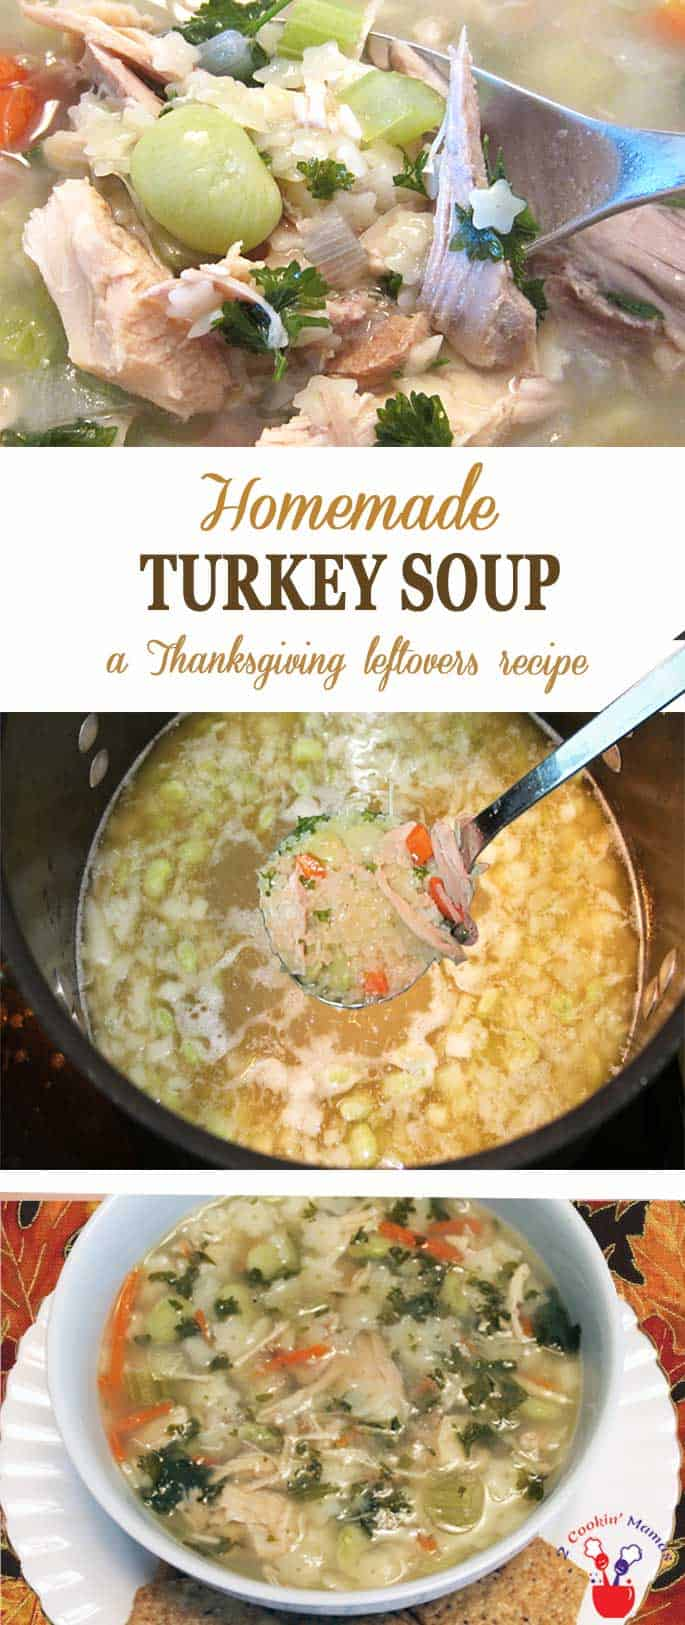 Homemade Turkey Soup | 2 Cookin Mamas Here's an easy homemade turkey soup to make with leftover Thanksgiving turkey. Add some vegetables, noodles and voila - hot healthy soup for a cold day! #turkeysoup #soup #Thanksgivingleftovers #recipe